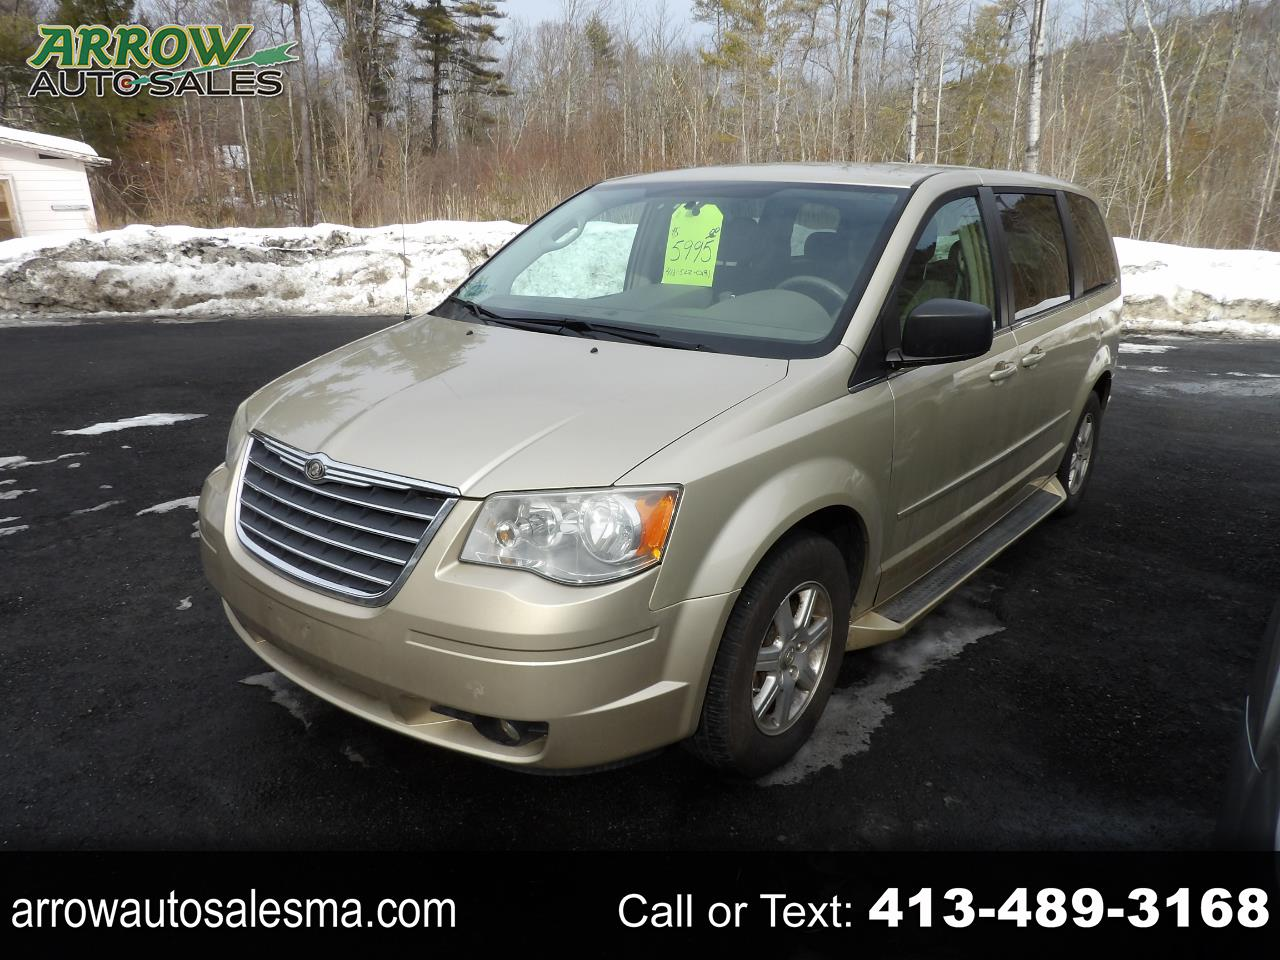 Chrysler Town & Country 4dr Wgn LX 2010